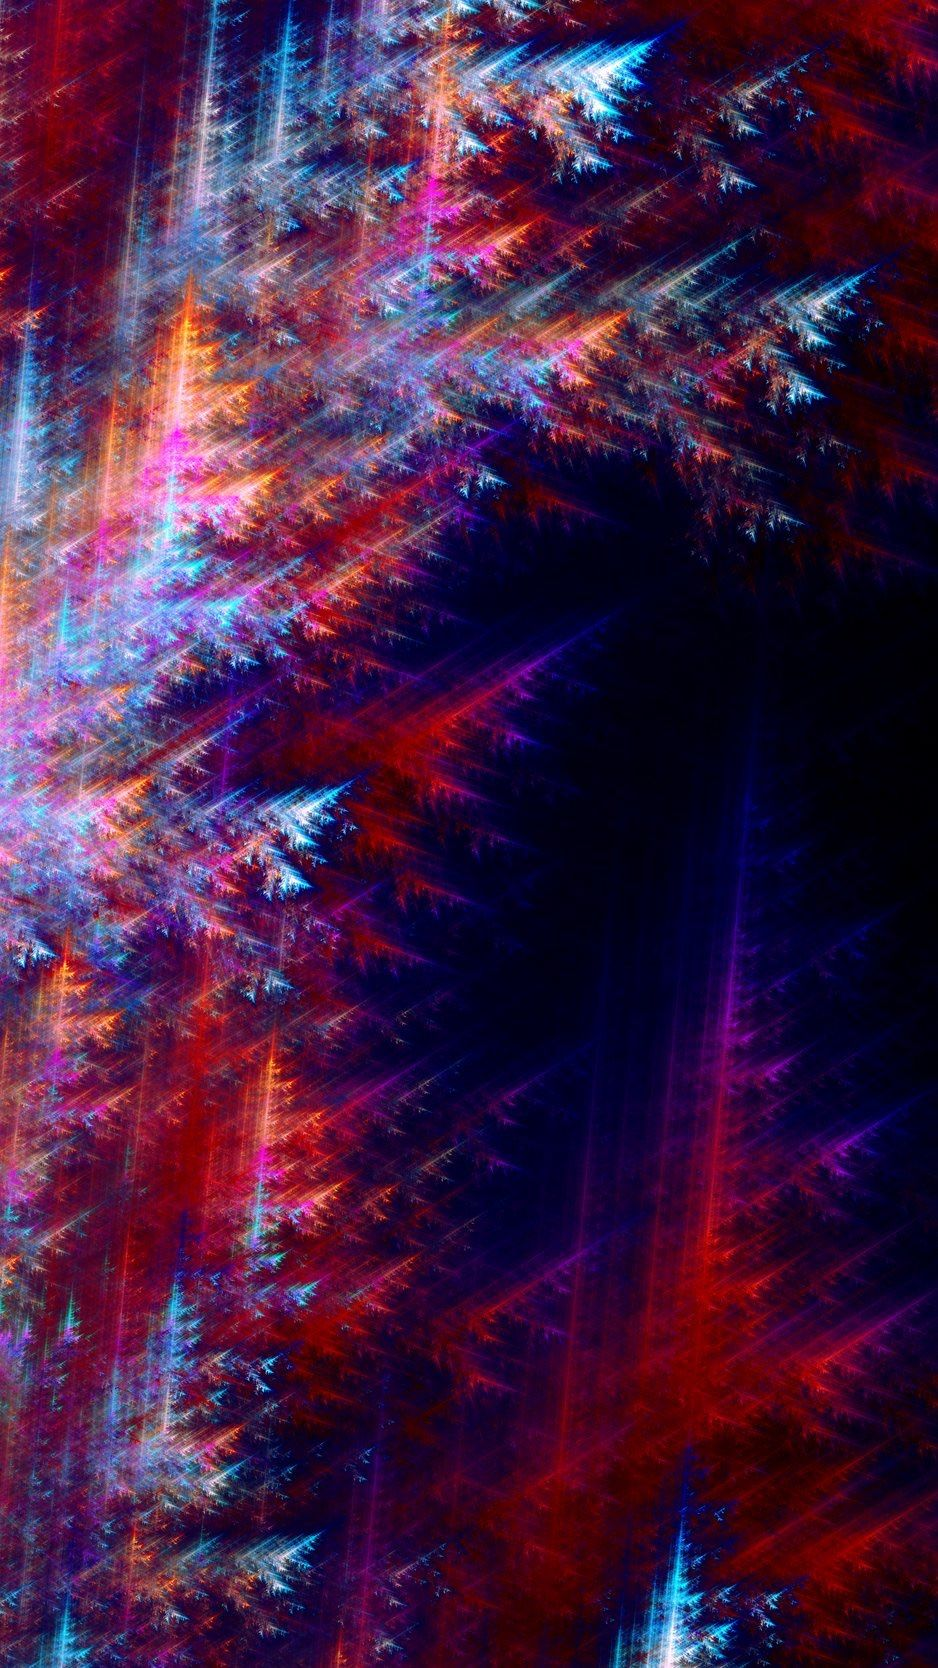 fractal_colorful_blur_139458_938x1668.jpg